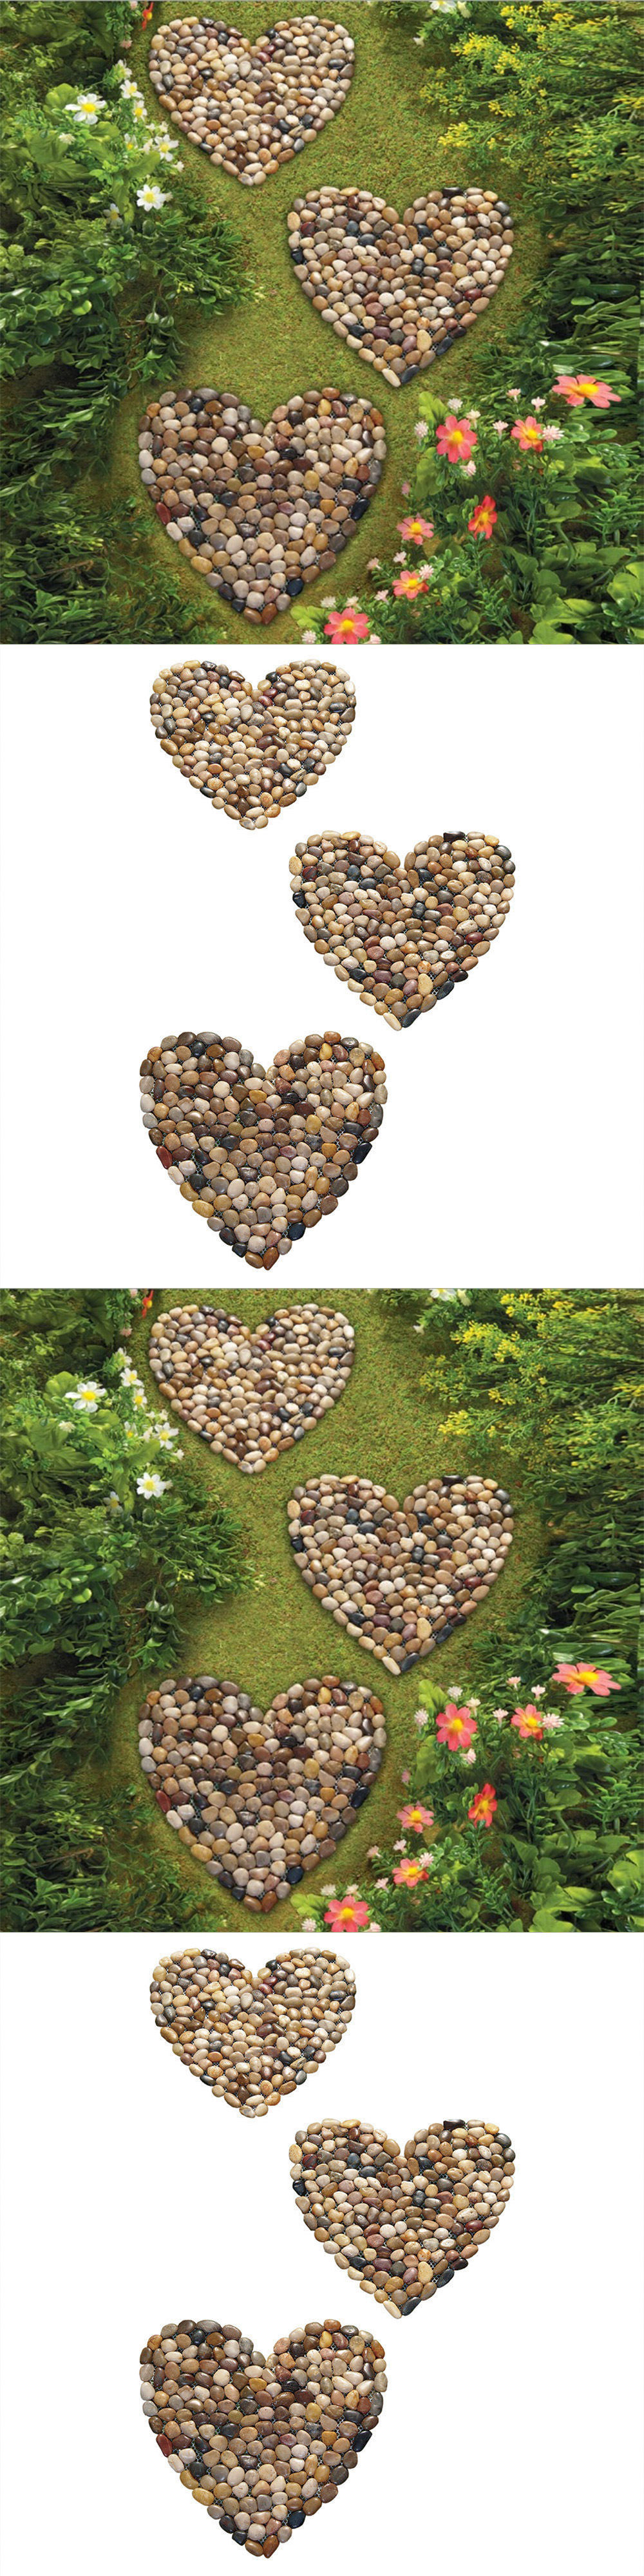 decor more cheap purple stones many decorative in stone come learn mosaic and pin pinterest flavors creations stepping personalized round garden shaped my